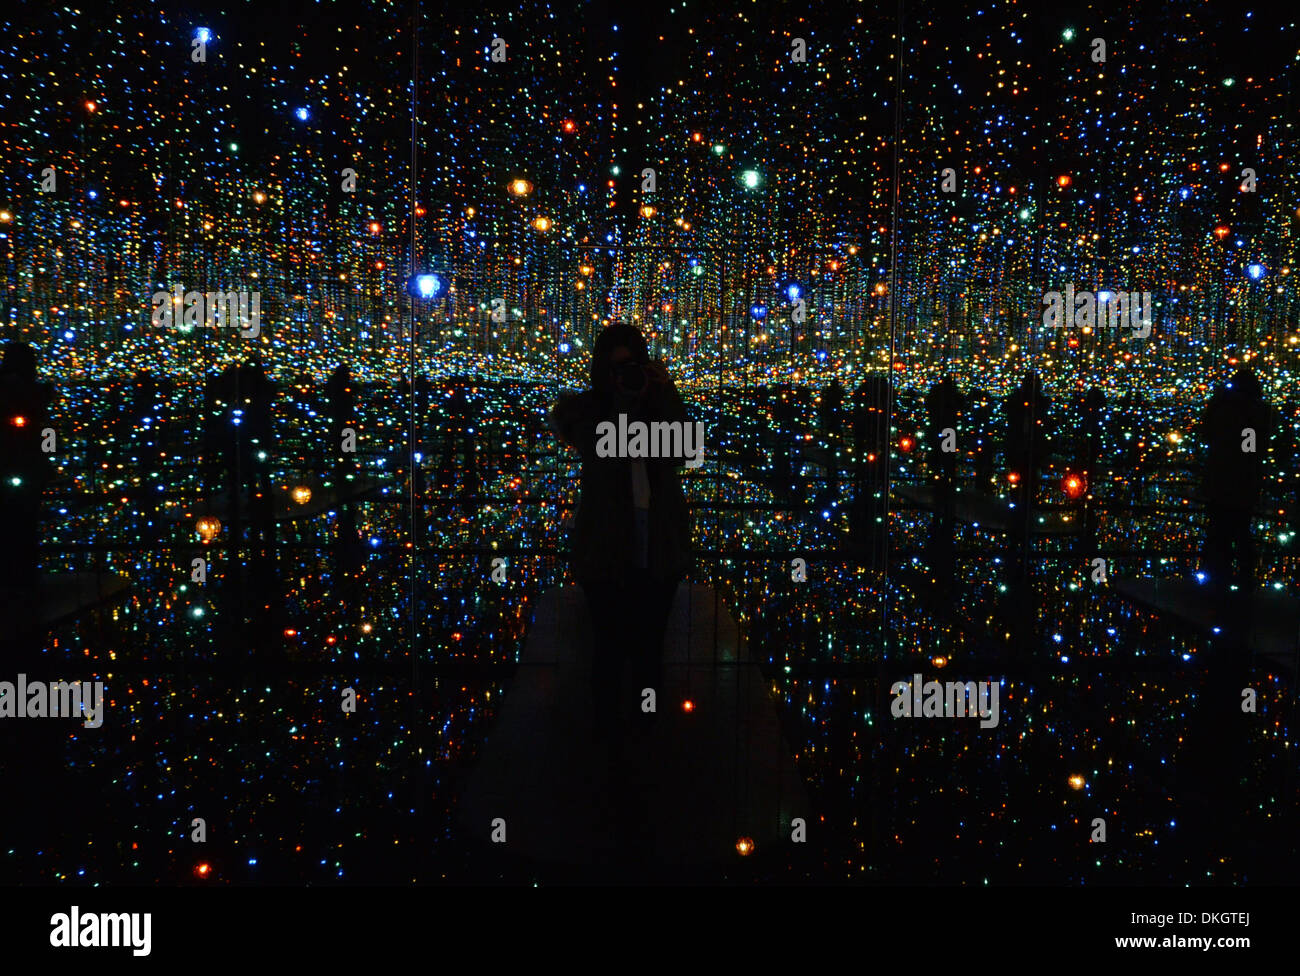 New York, USA. 5th December 2013. A visitor is reflected in the mirror while visiting the 'Infinity Mirrored Room - The Souls of Millions of Light Years Away', an installation art by Japanese artist Yayoi Kusama in New York, the United States of America, on Dec. 5, 2013. Two mirrored infinity rooms by Japanese artist Yayoi Kusama are currently on display at the David Zwirner gallery in New York City. The infinity room 'Love Is Calling' is filled with brightly-colored and polka-dotted inflatable appendages. Credit:  Xinhua/Alamy Live News - Stock Image